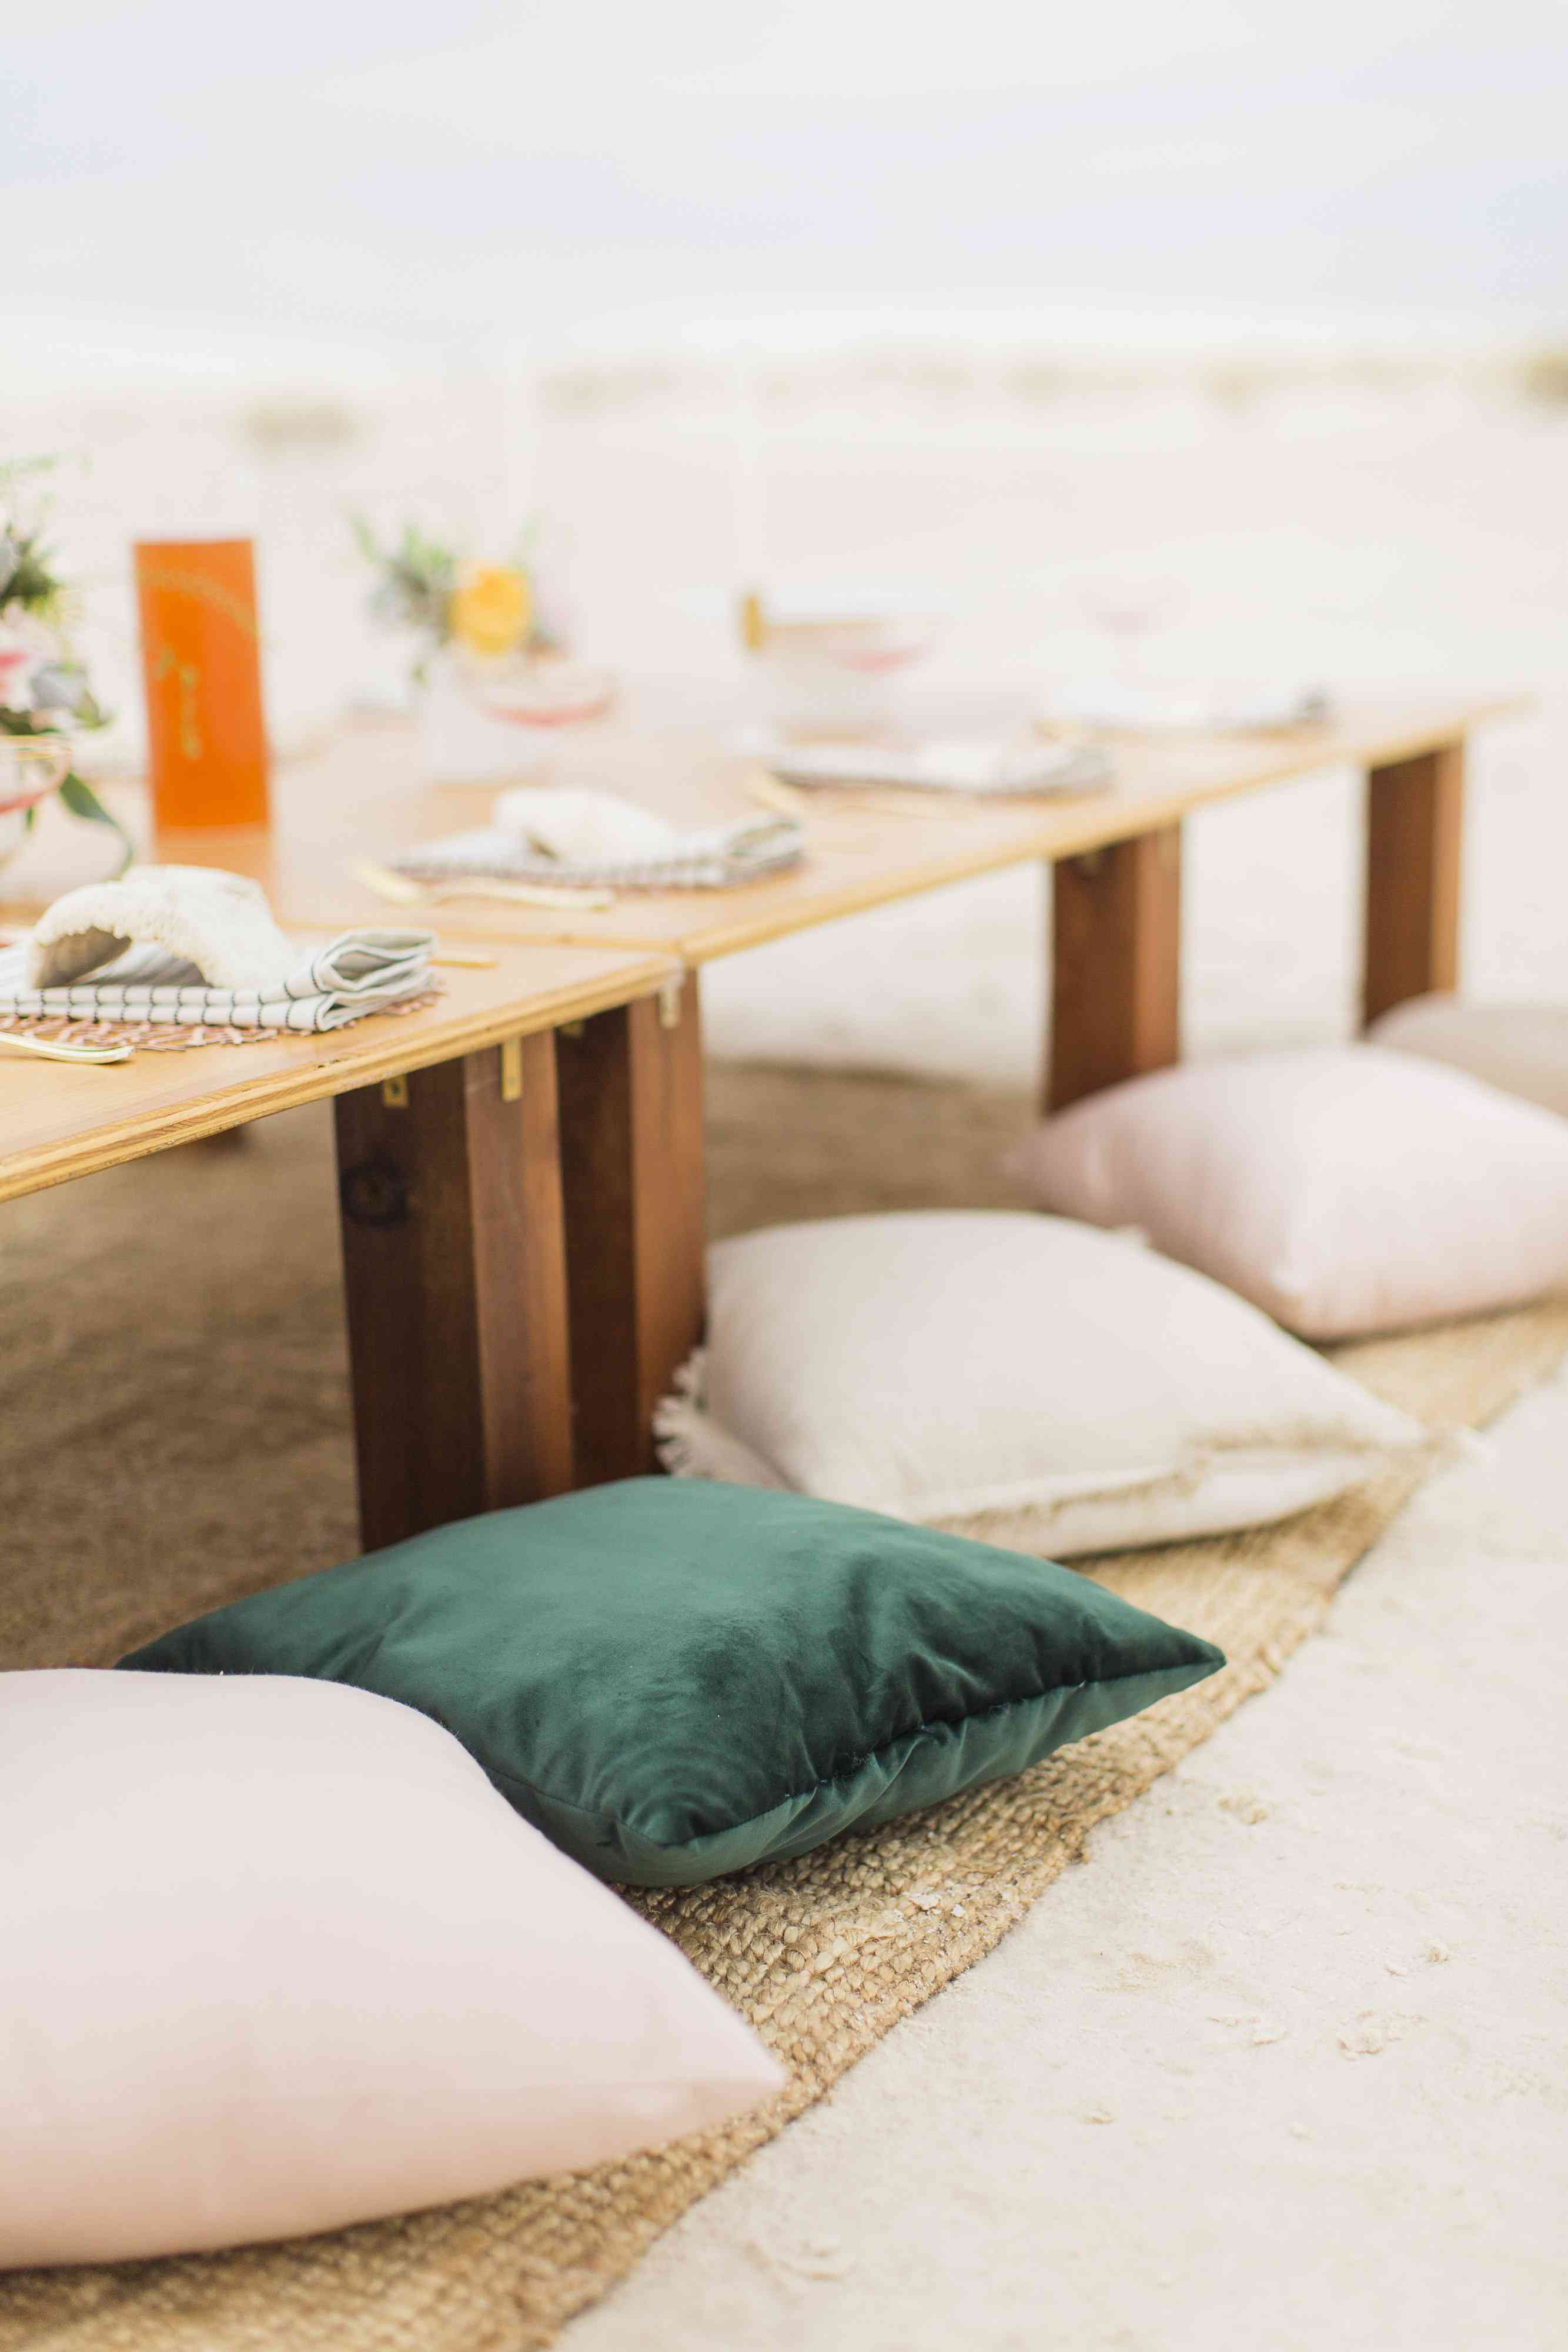 Reception Table With Floor Cushions